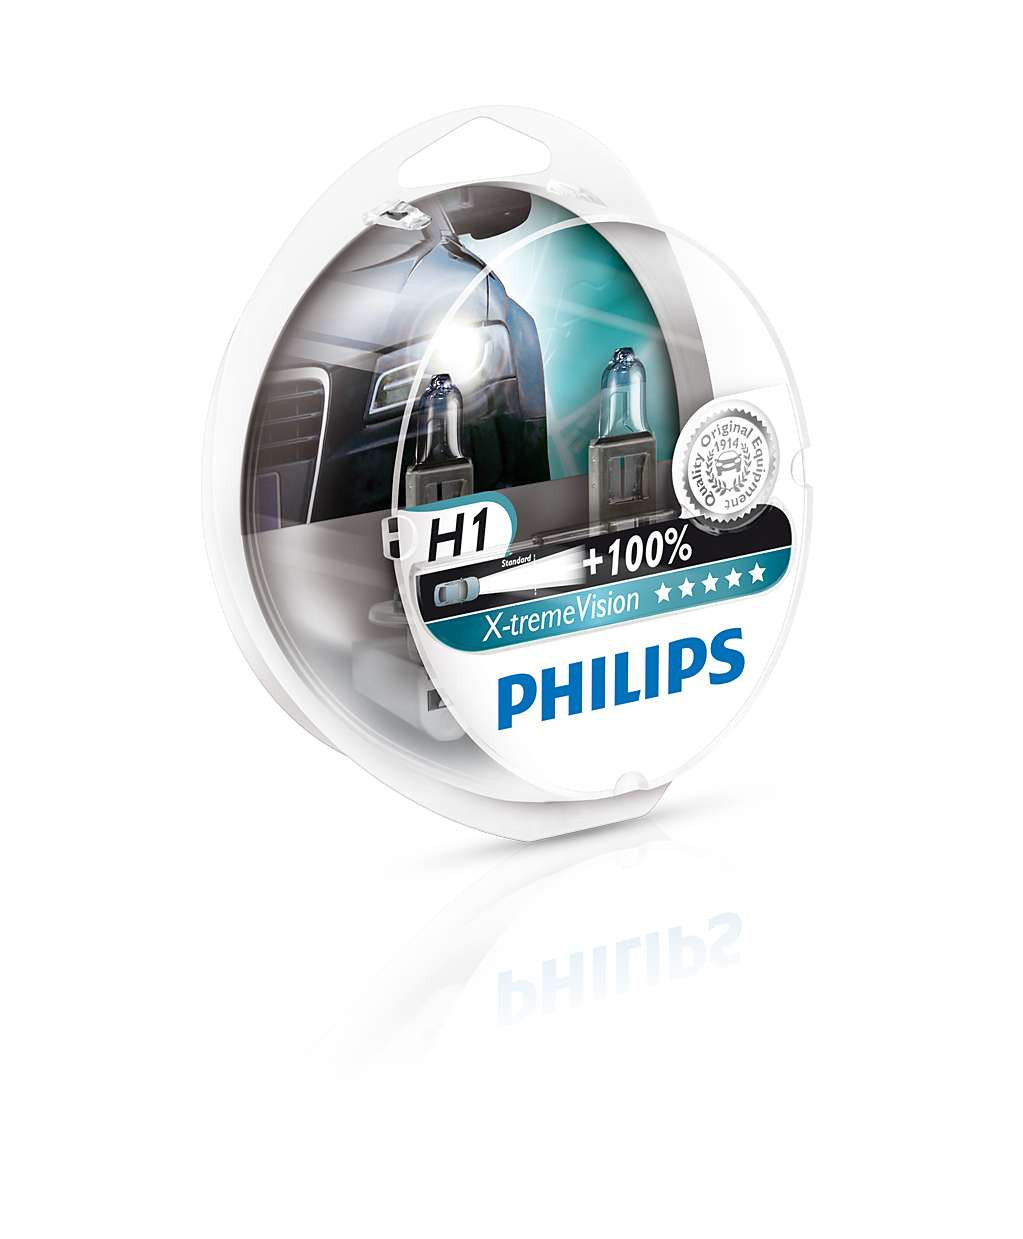 Комплект галогенных ламп PHILIPS 12258XVS2 H1 X-treme Vision SP 12V 55W